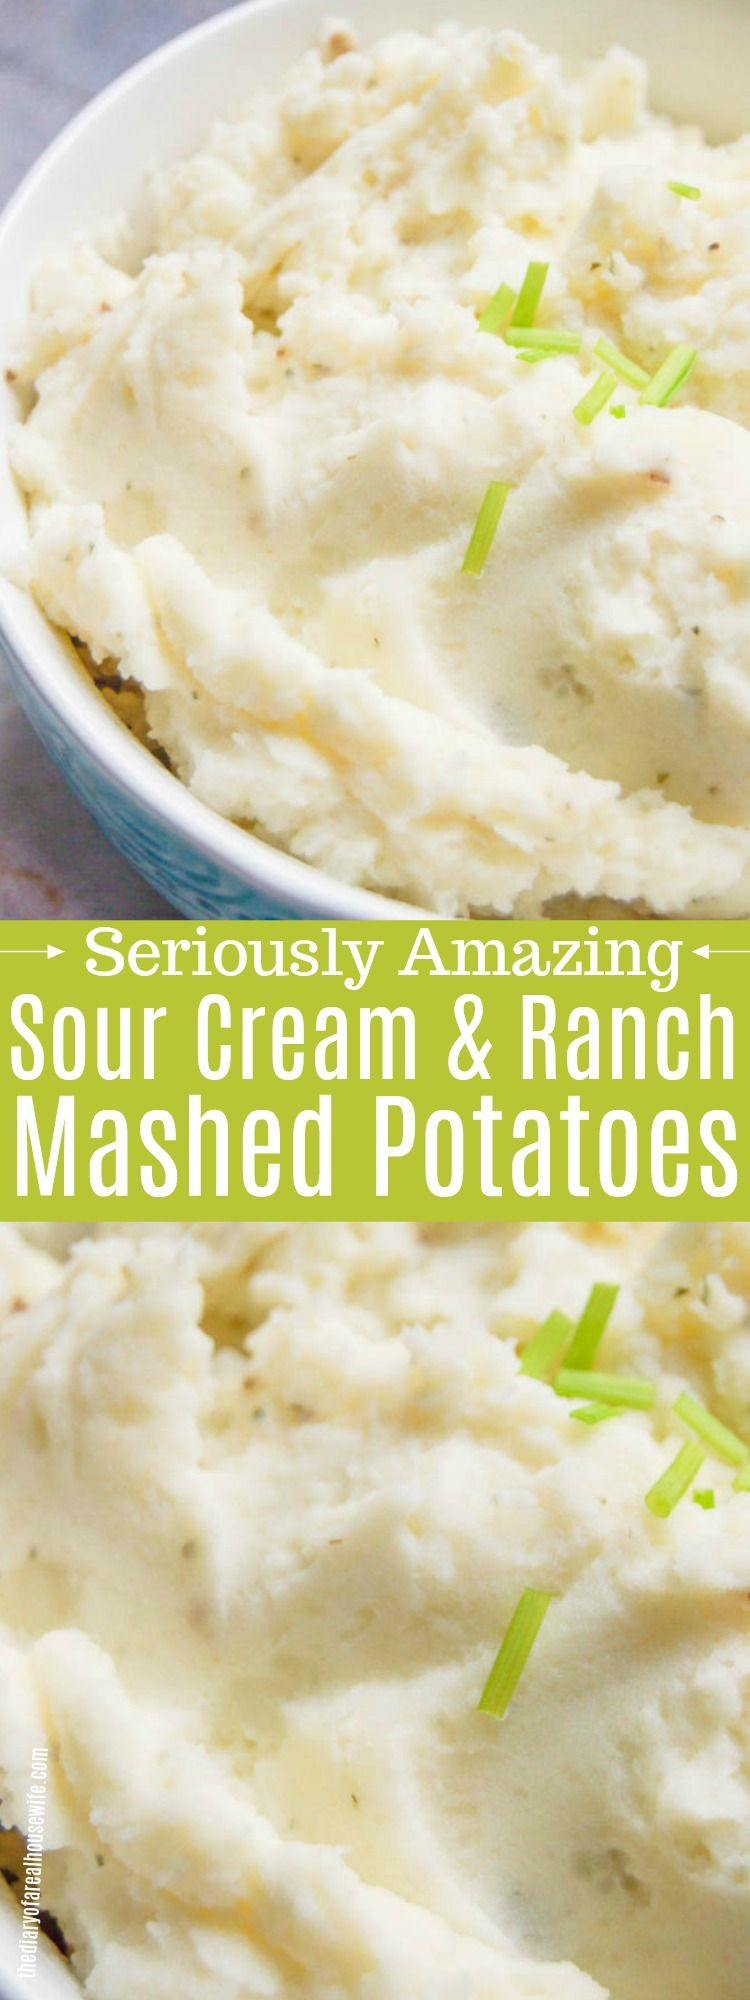 Smooth And Creamy Homemade Sour Cream And Ranch Mashed Potatoes Sidedish Thanksgiving Mashedp Homemade Sour Cream Sour Cream Potatoes Ranch Mashed Potatoes